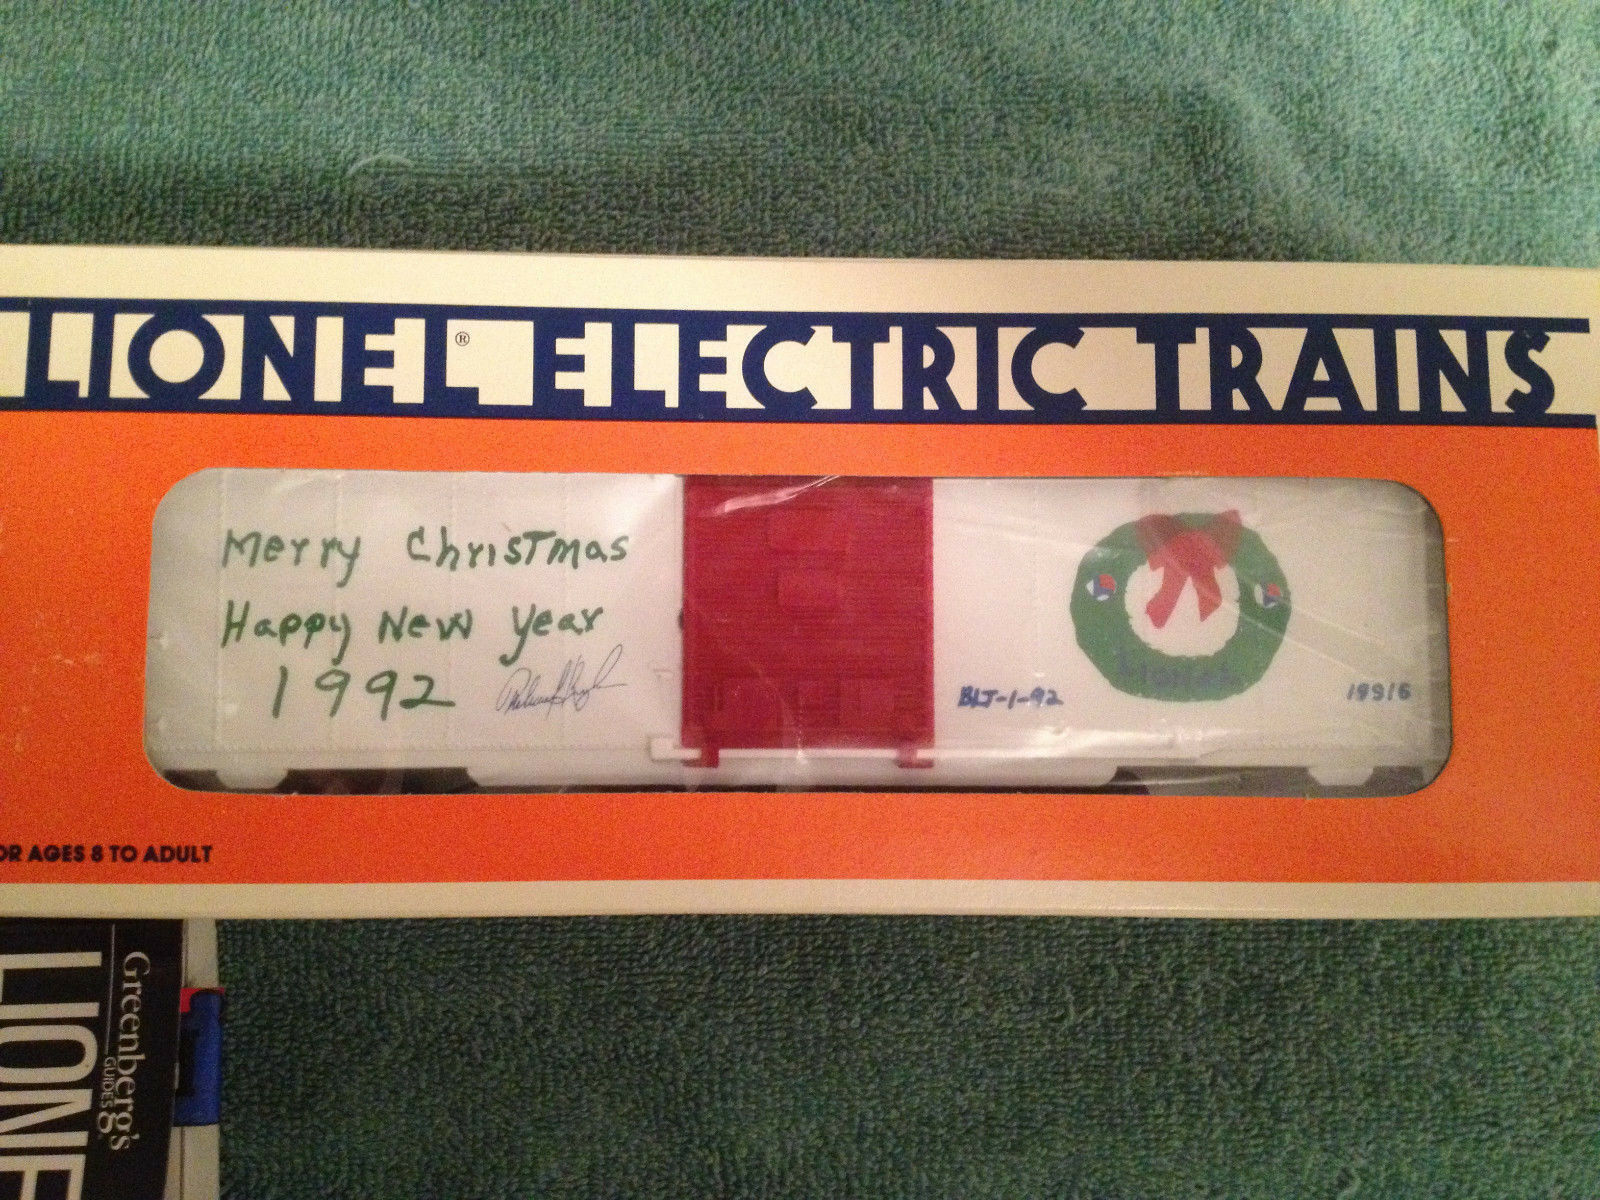 Lionel 1992 EMPLOYEE Christmas Car in MINT Condition...VERY VERY RARE